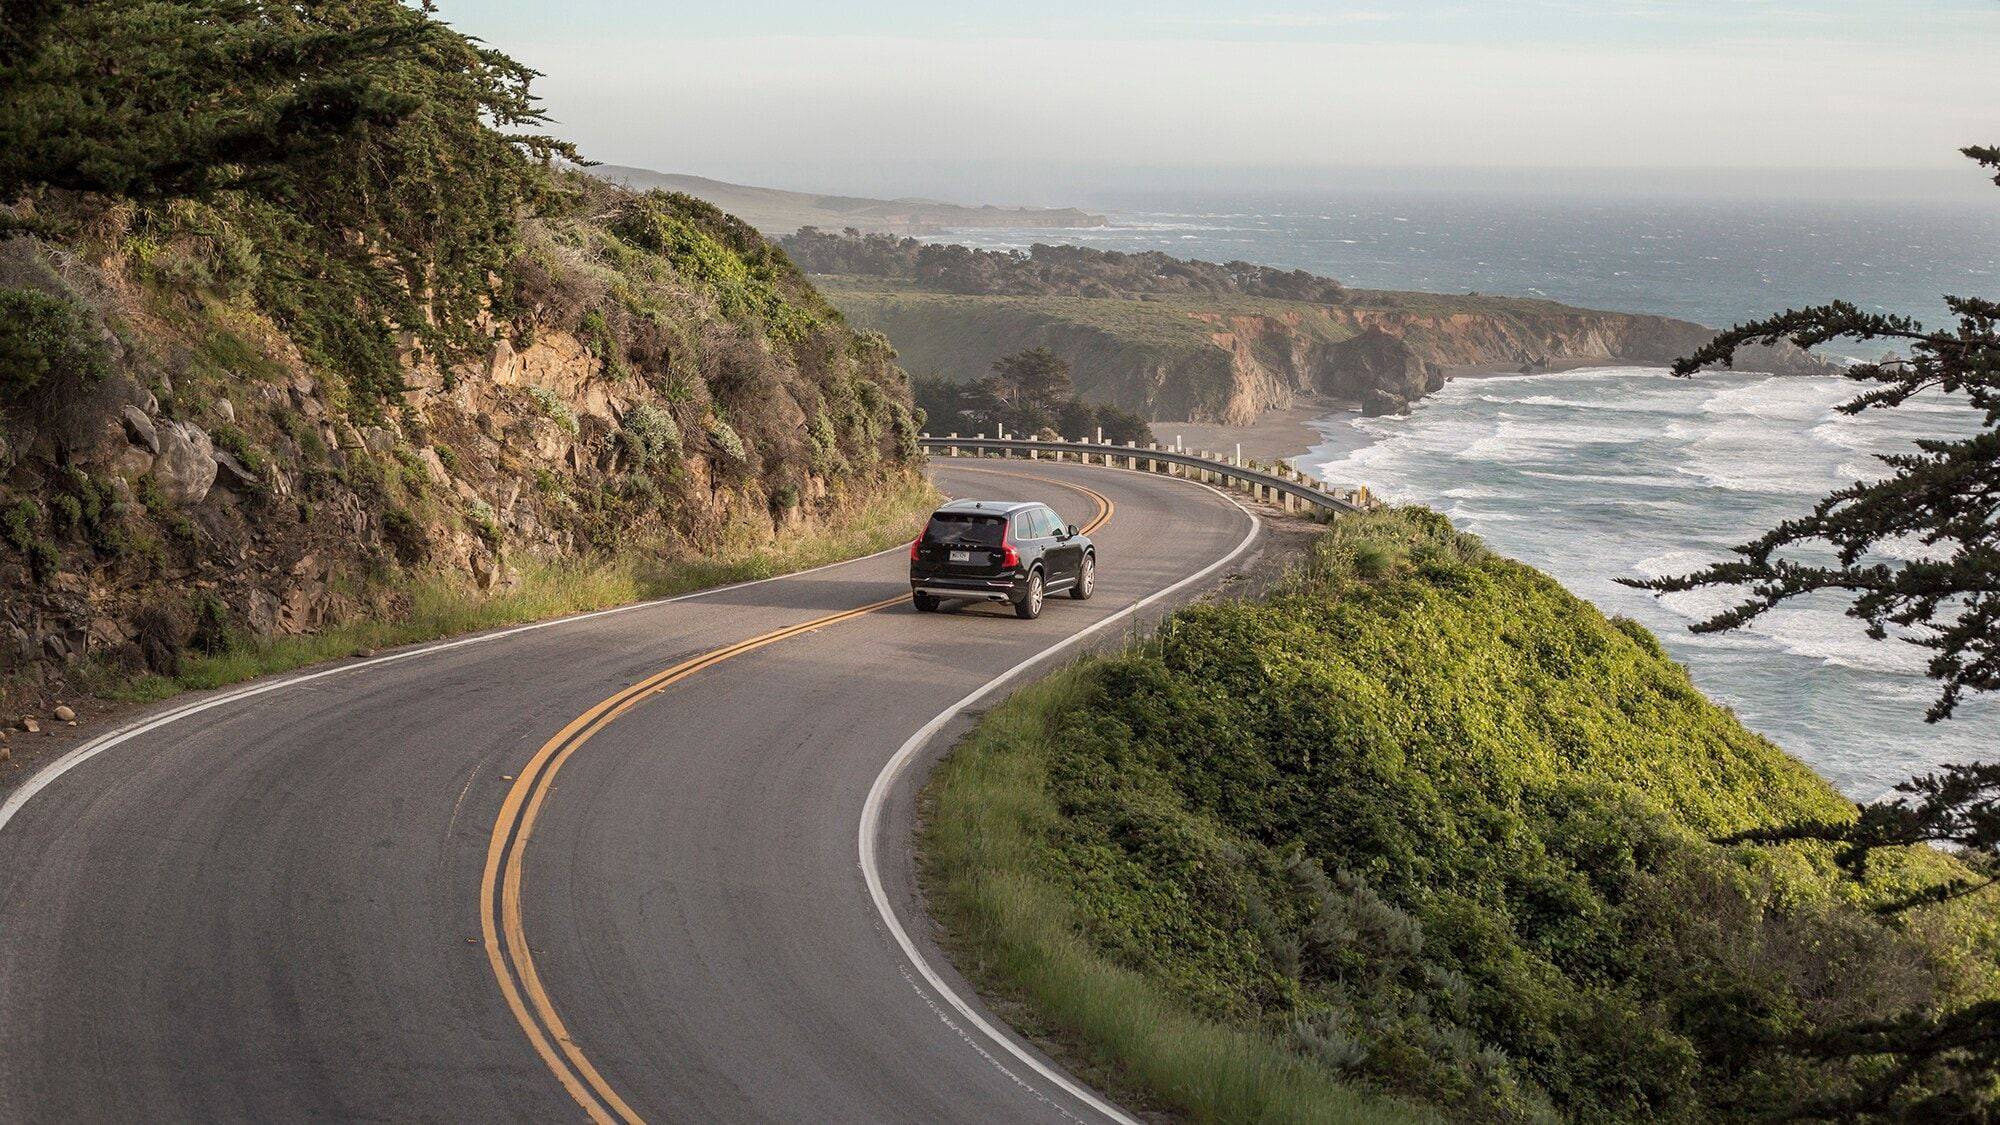 The new Volvo XC90 winds along the road of the Californian coast